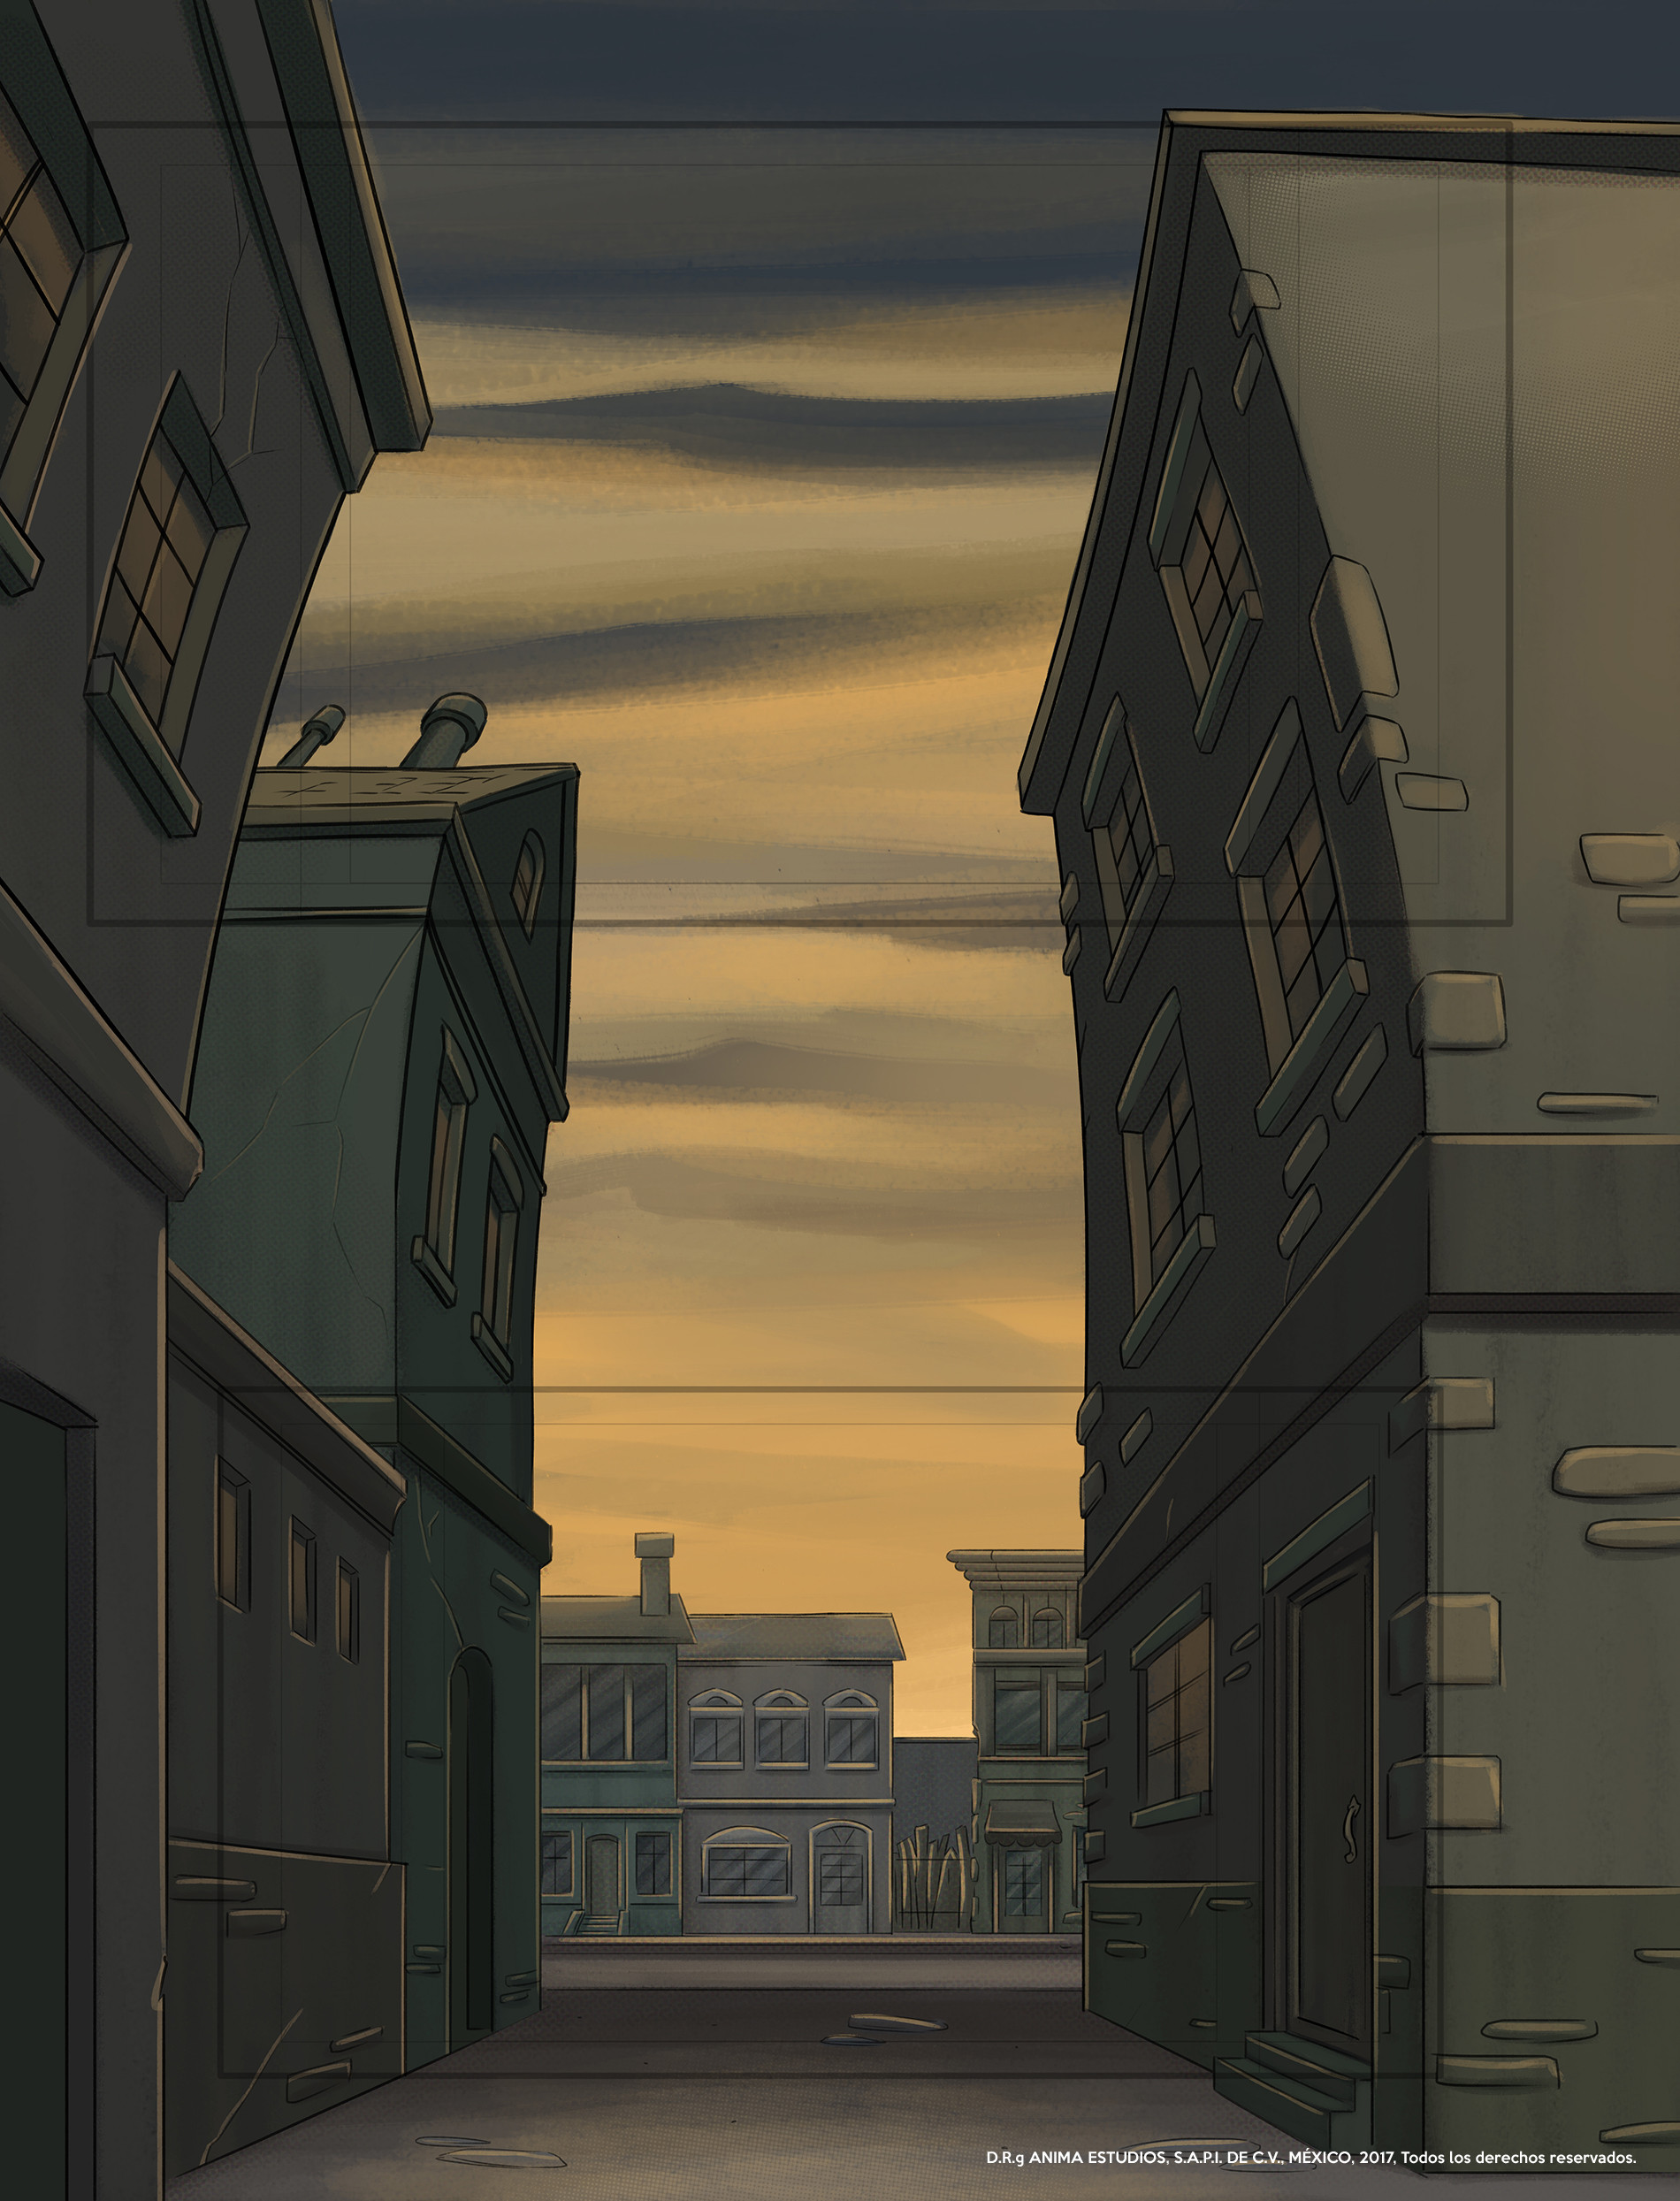 One of the last shots of the episode where the camera looks upwards from the street to see the passing airship.